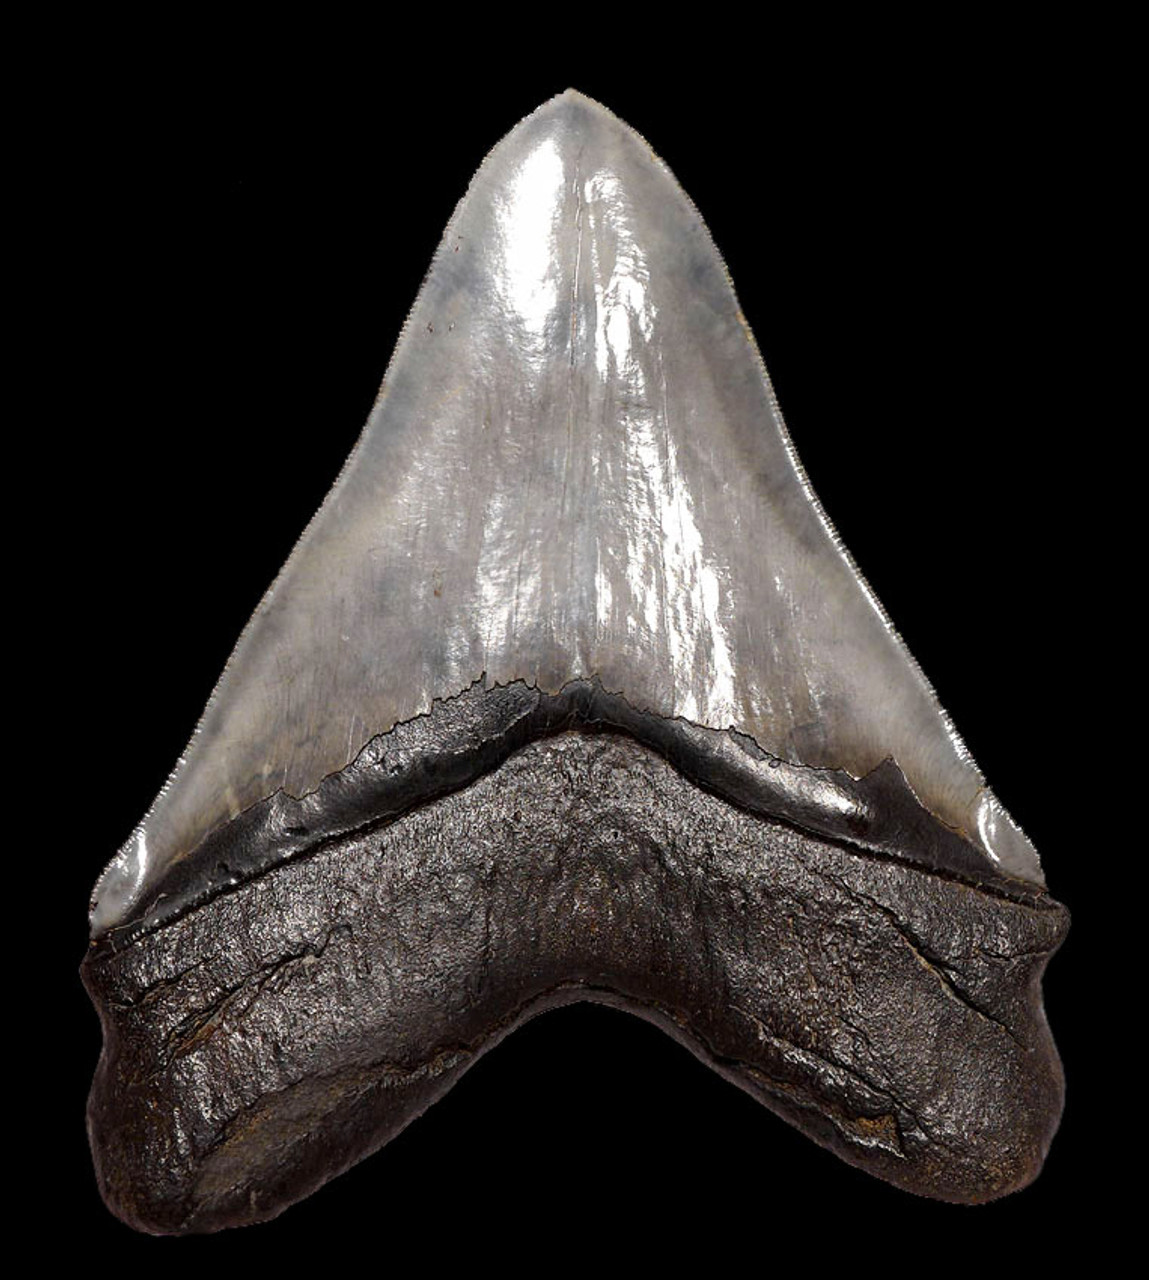 SH6-350 -  UNRESTORED INVESTMENT CLASS 6 INCH MEGALODON SHARK TOOTH